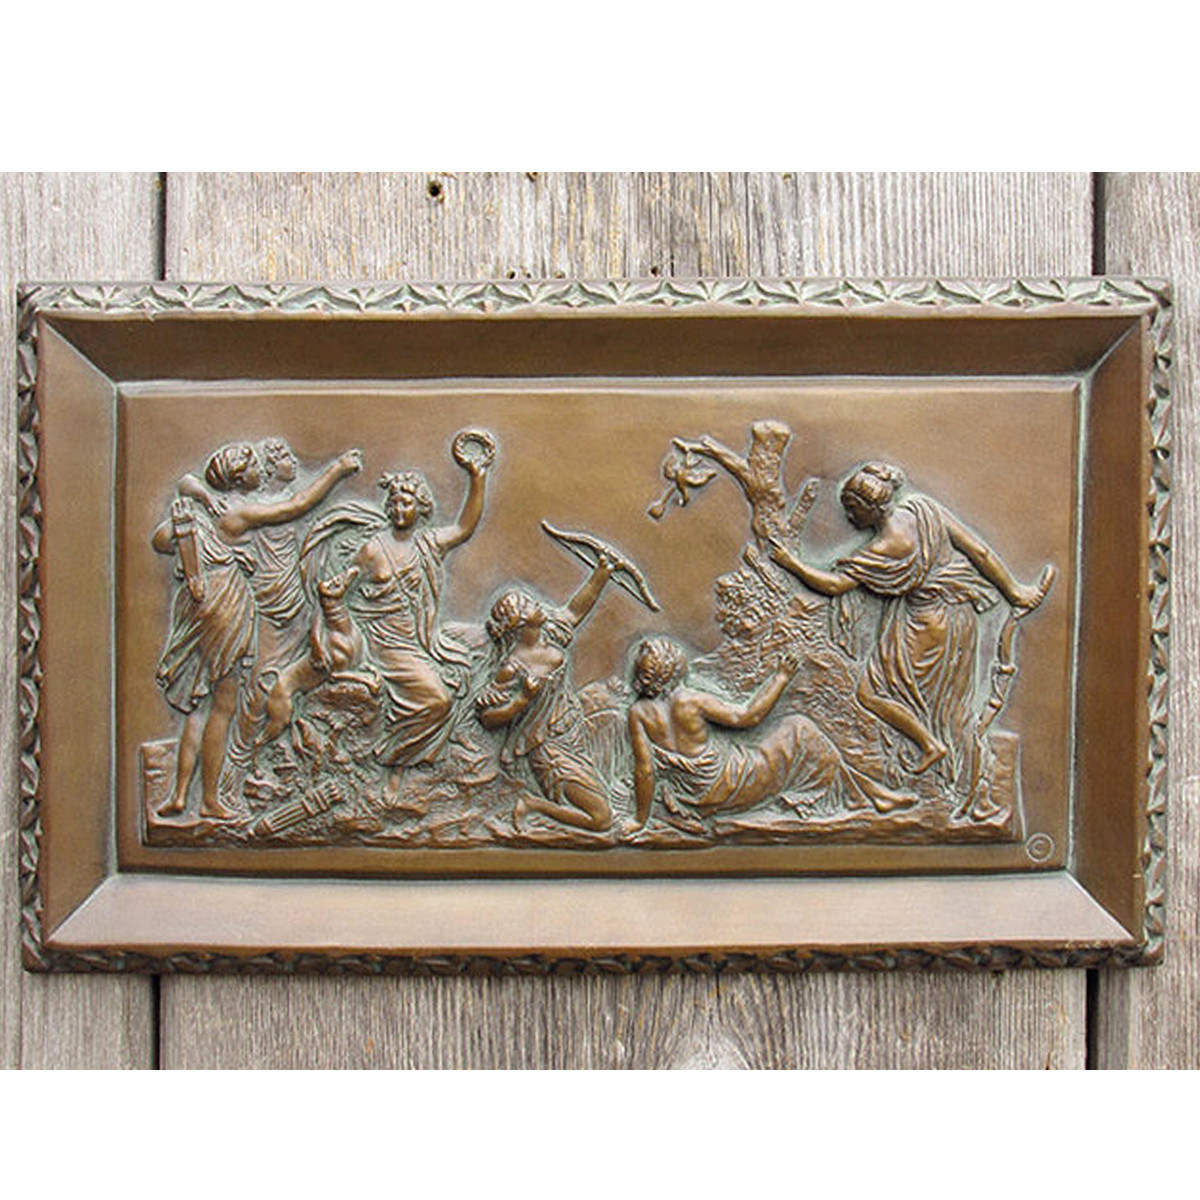 A15013 - Vintage Neoclassical Bronze Patina Resin Plaque